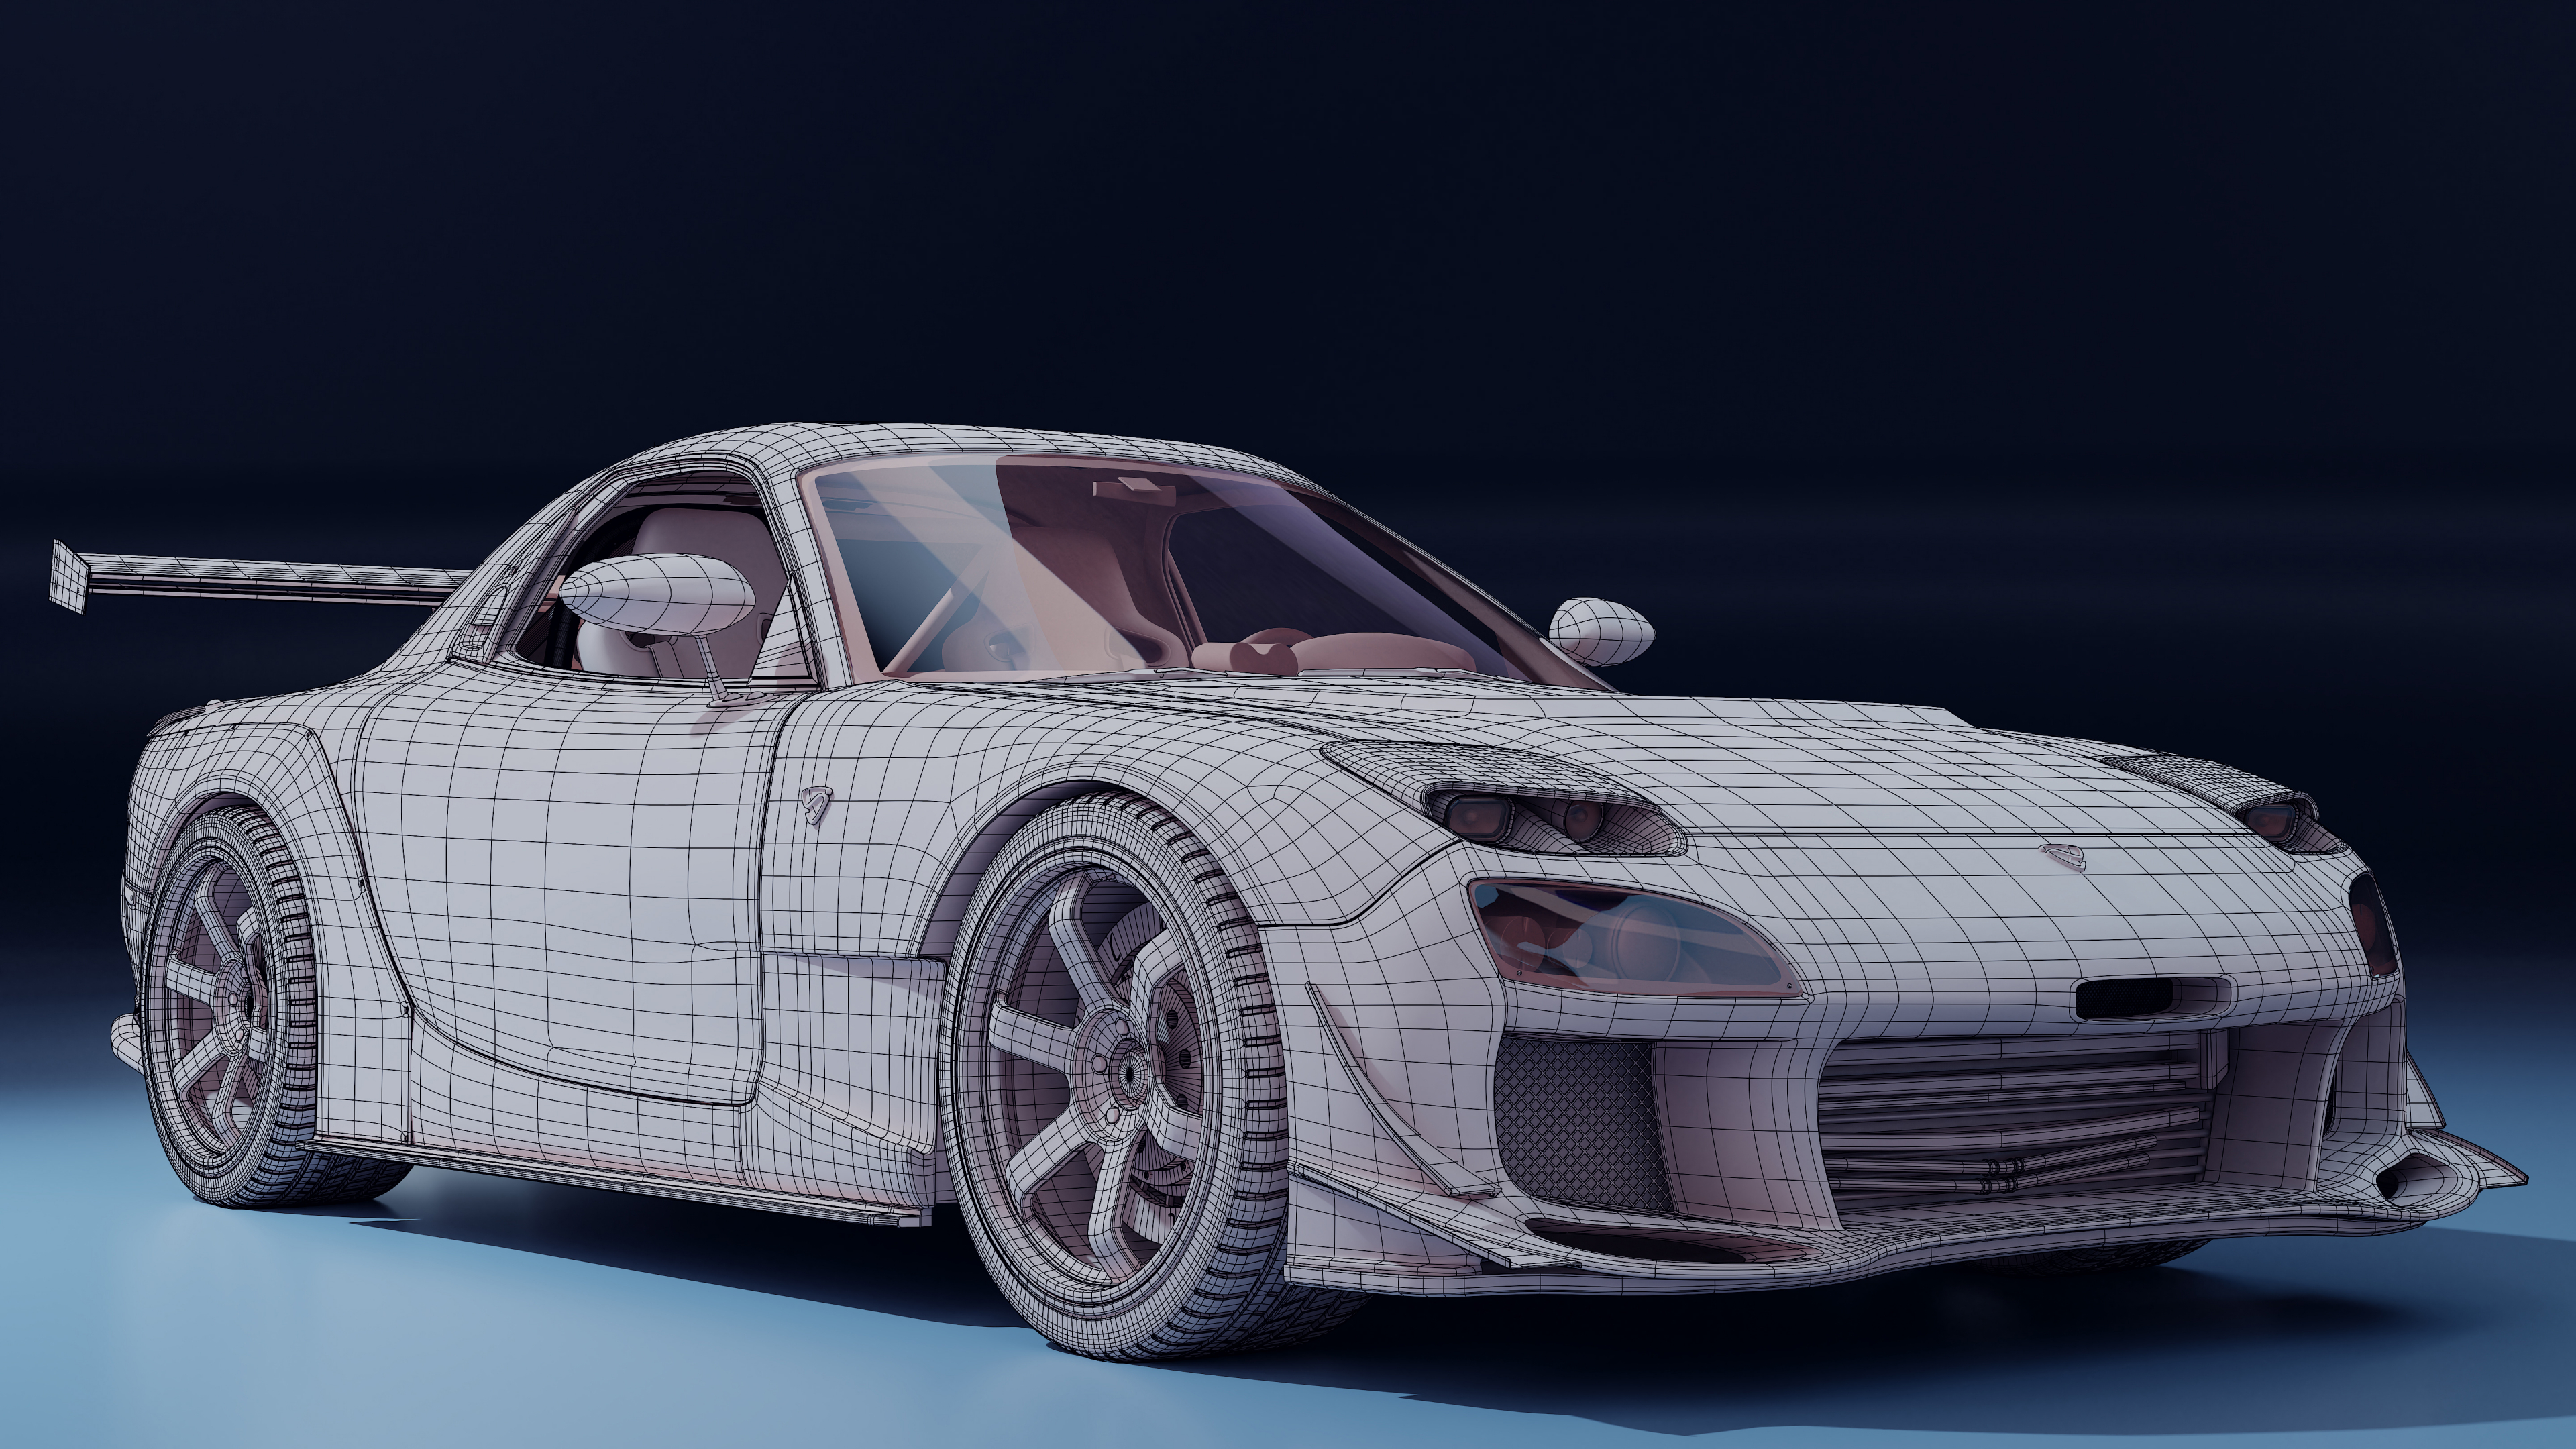 Mazda RX-7 in Blender cycles render image